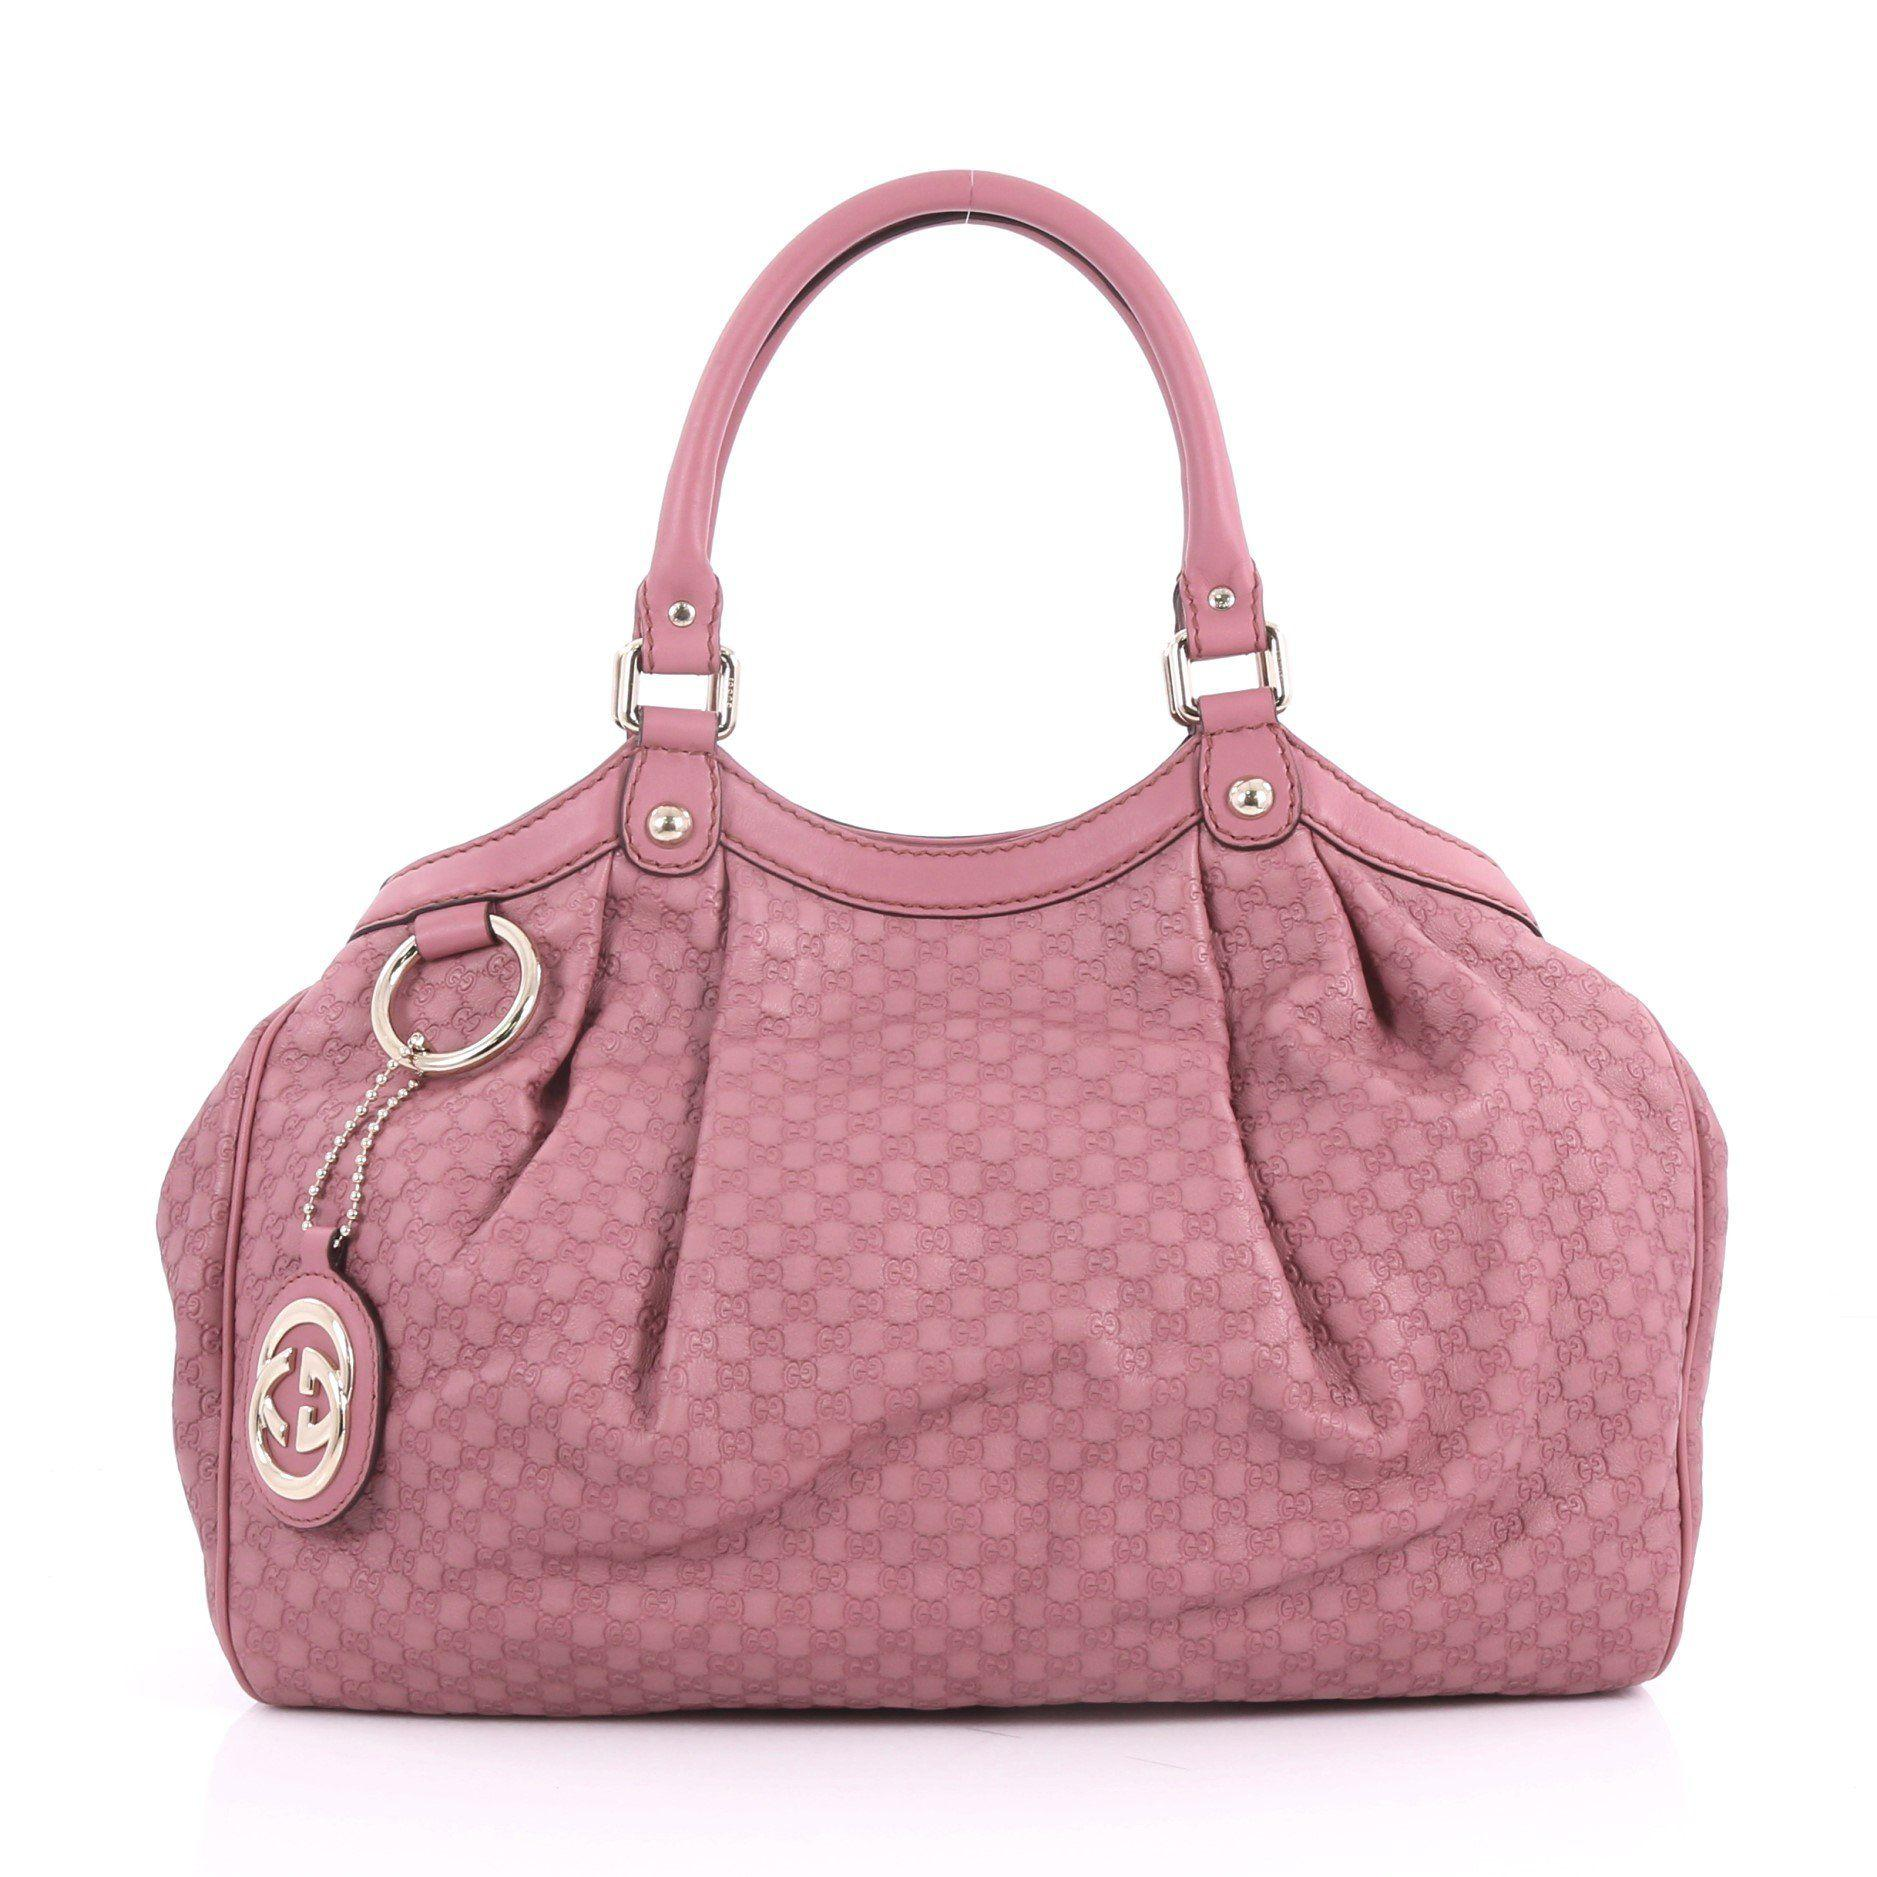 3ea40f87f Lyst - Gucci Pre Owned Sukey Tote Microssima Leather Medium in Pink